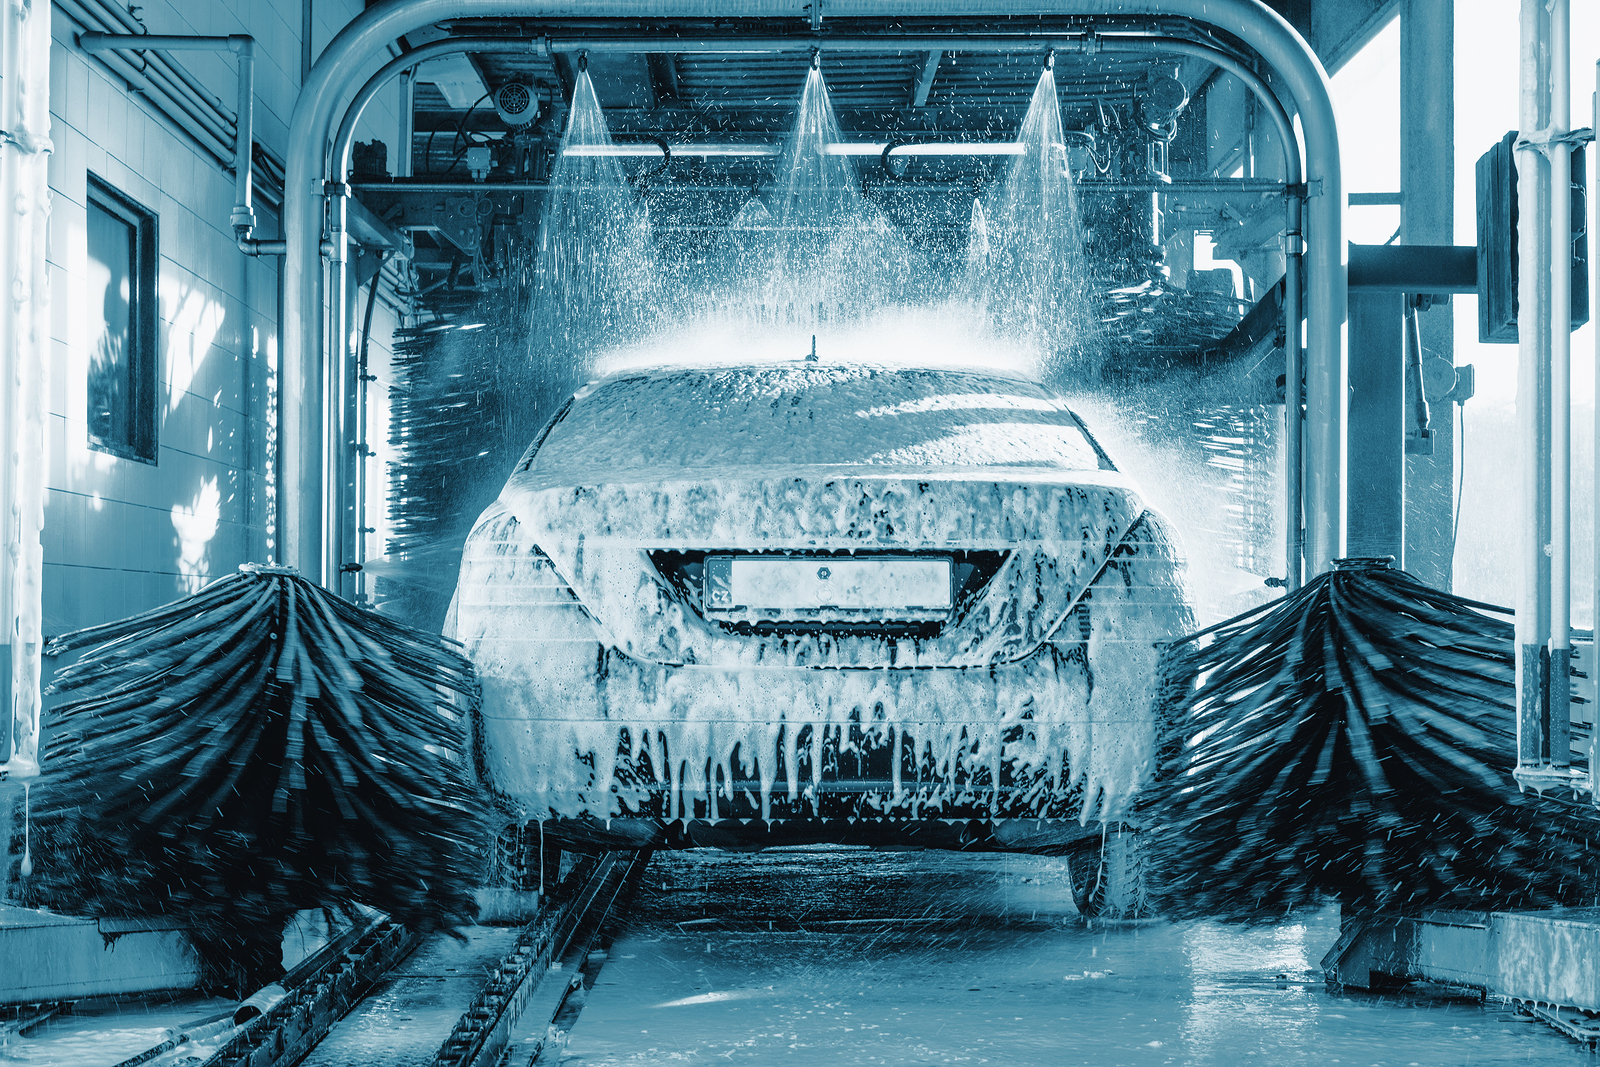 Car wash systems construction supplies equipment yakima wa car wash systems construction supplies equipment yakima wa northwest solutioingenieria Image collections